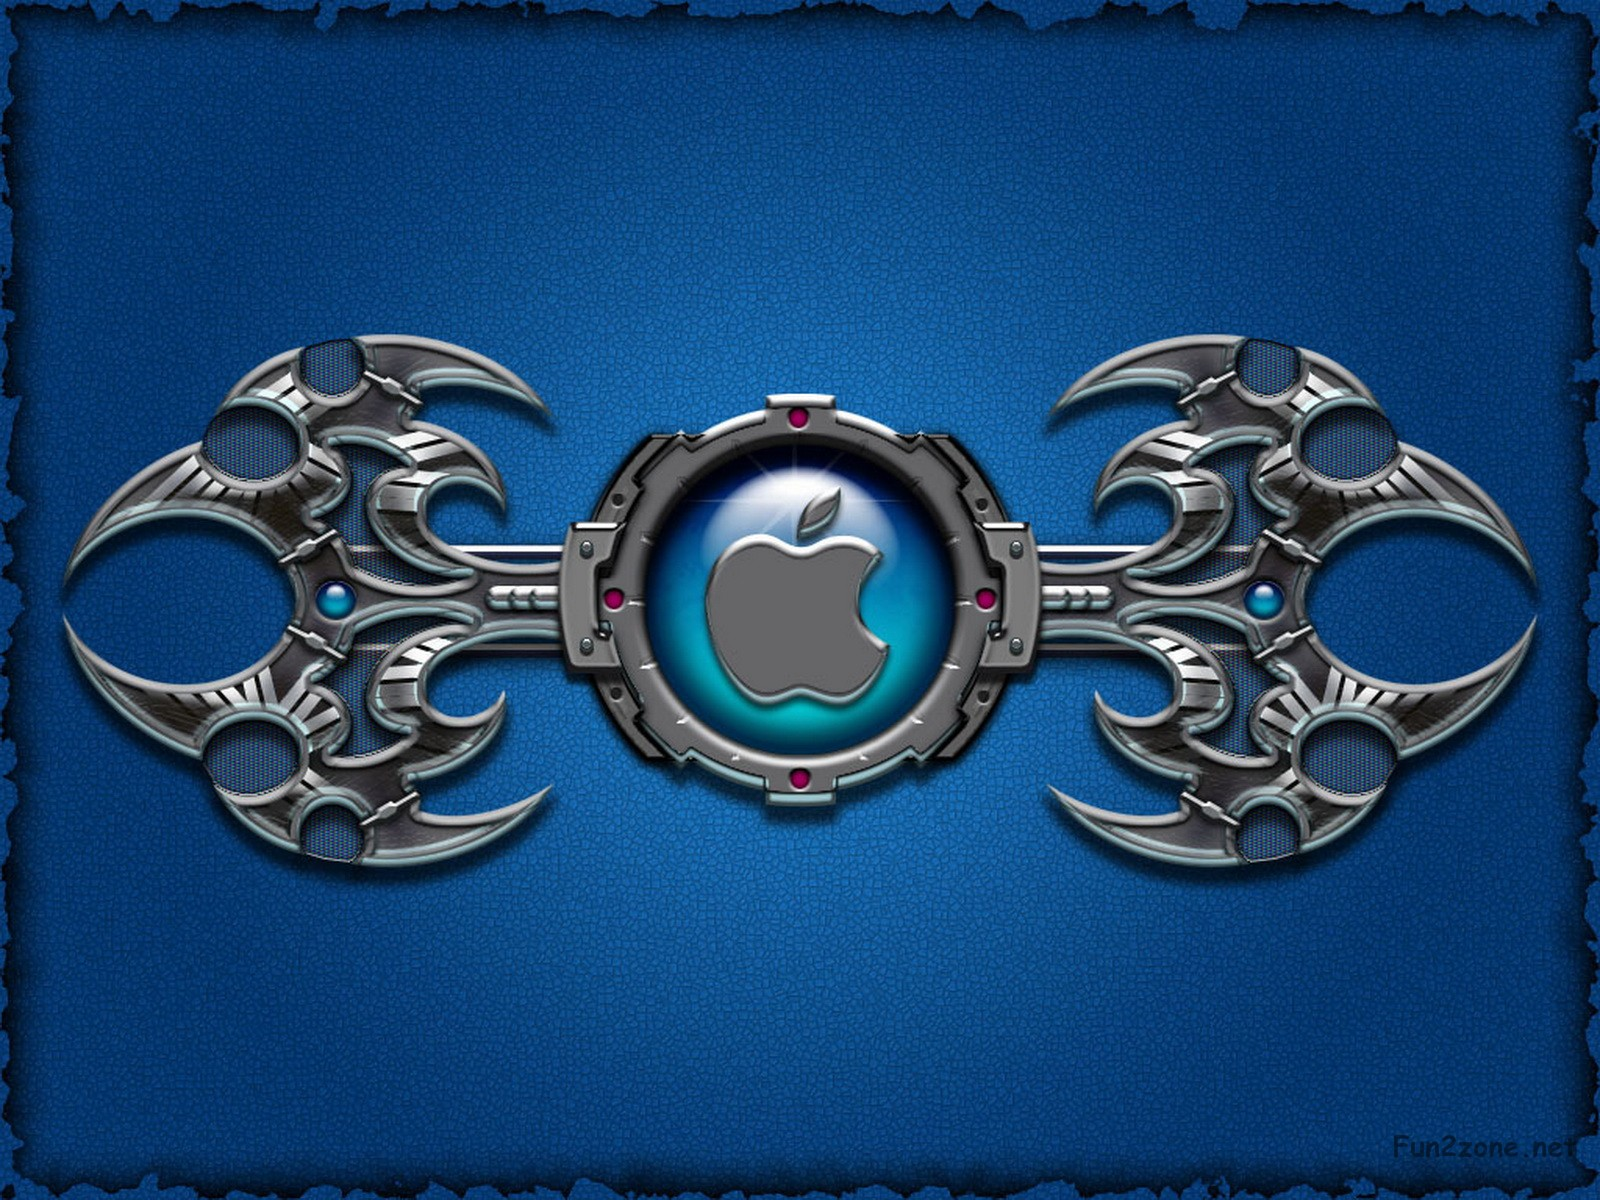 Fun zone latest apple logo 39 s wallpapers for Wallpaper companies